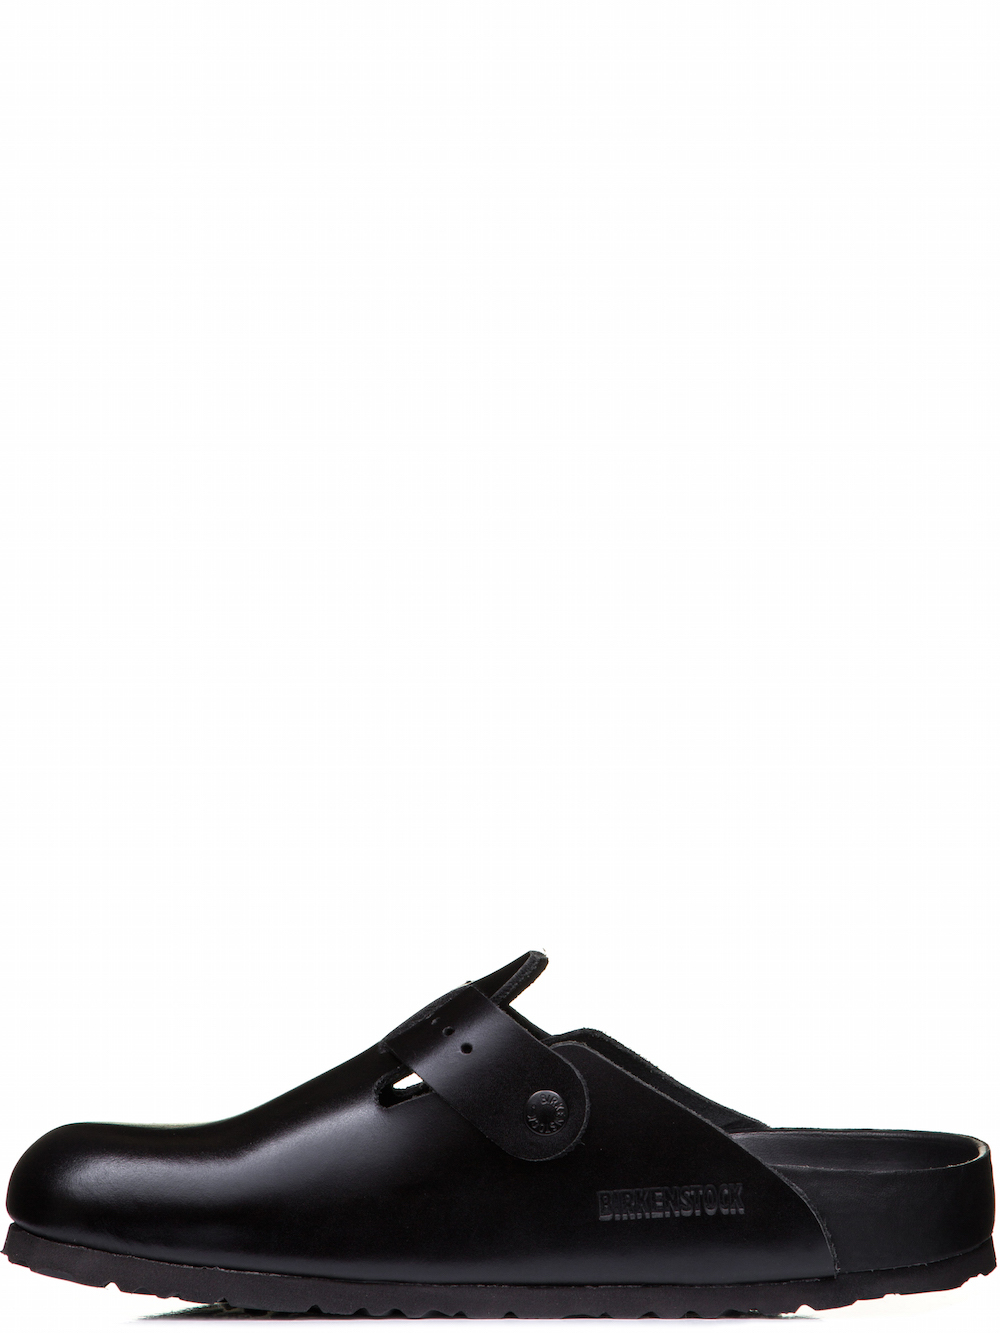 RICK OWENS X BIRKENSTOCK BOSTON CLOG IN BLACK